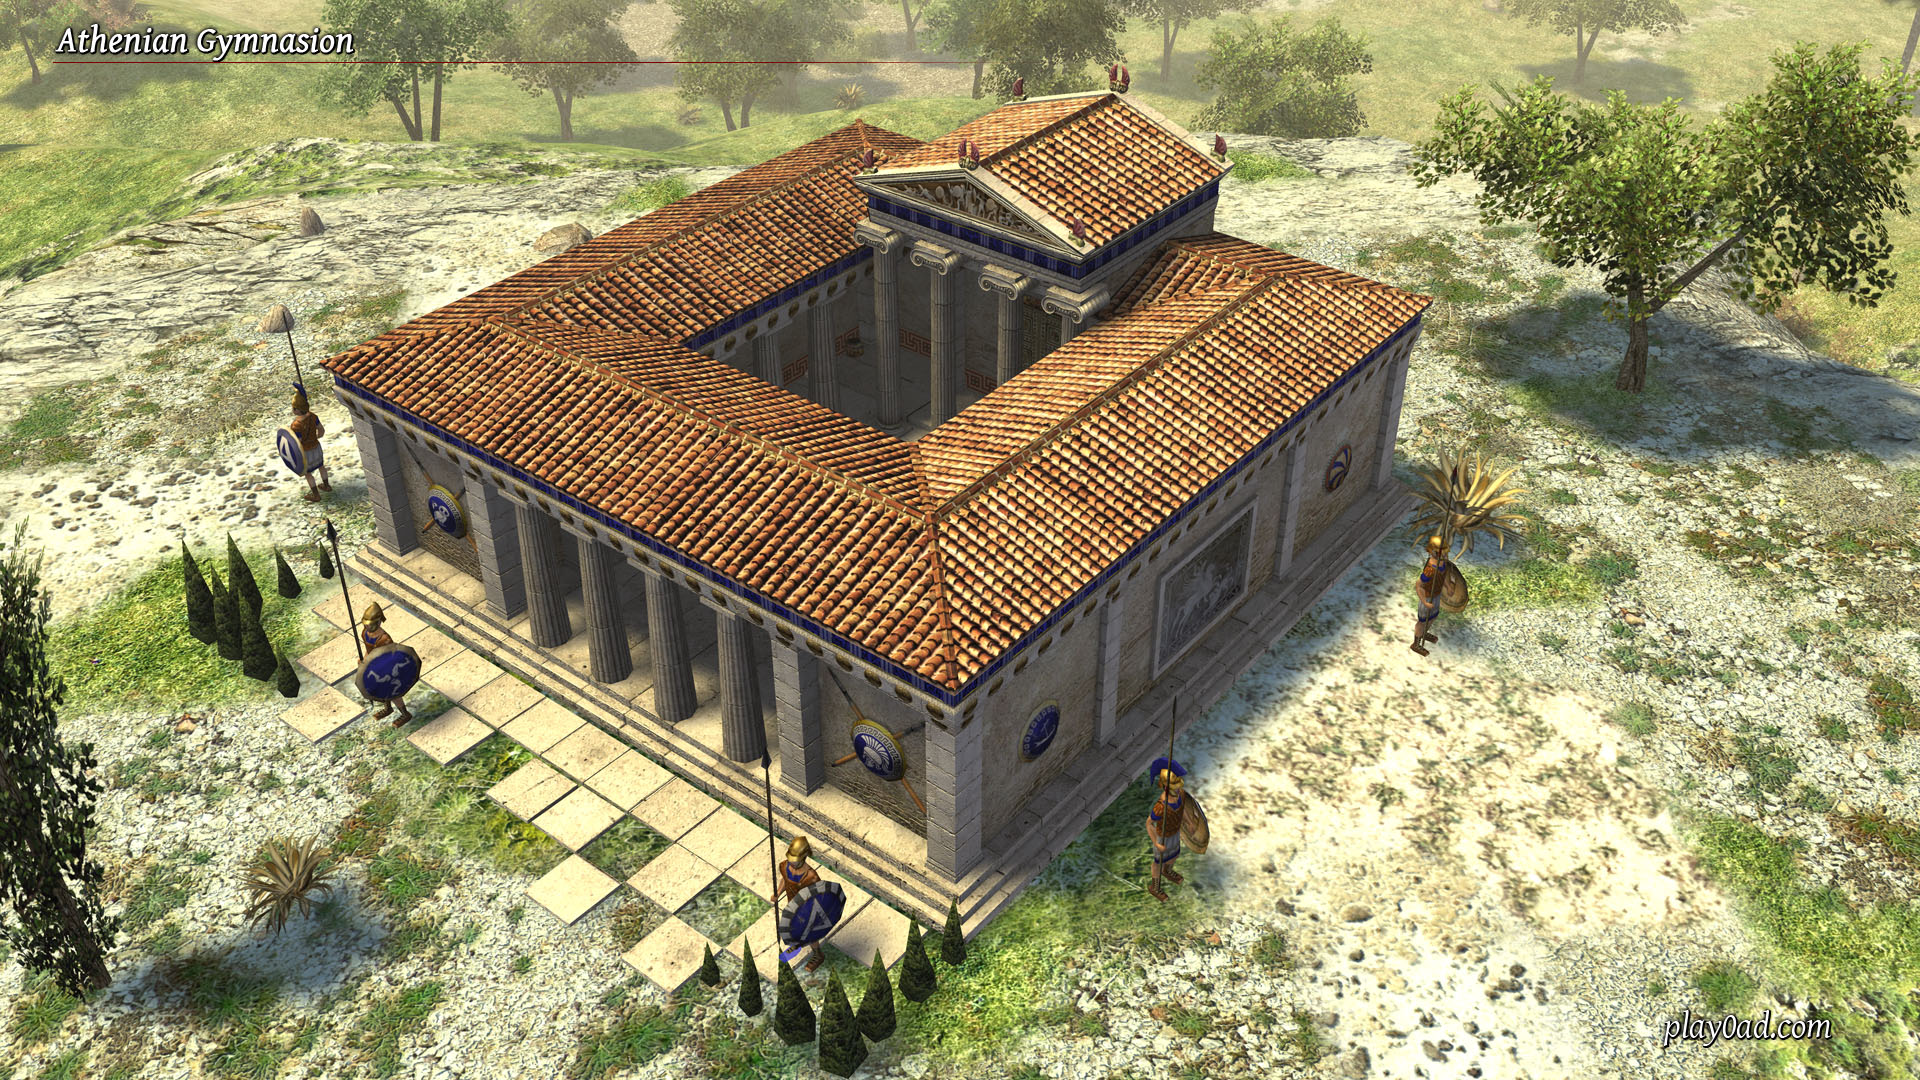 http://play0ad.com/wp-content/gallery/screenshots/athenian_gymnasion.jpg